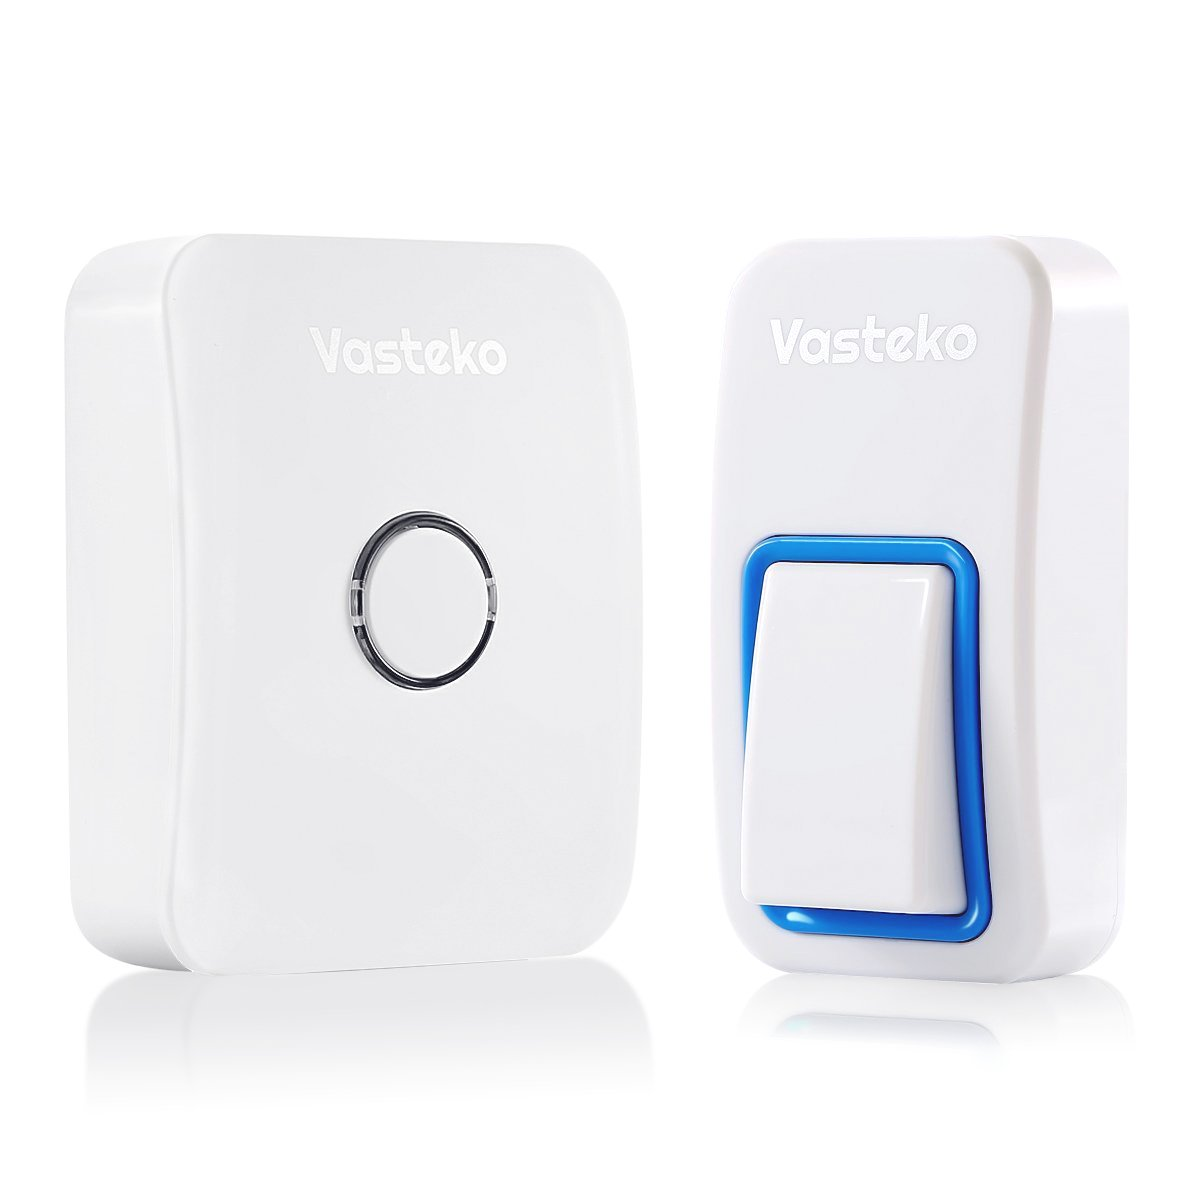 Vasteko Wireless Doorbell Kits No Battery Required For Both Wiring A Circuit Along With Button Transmitter And Receiver Ipx7 Waterproof Push 3 Level Volume 25 Ring Tunes White